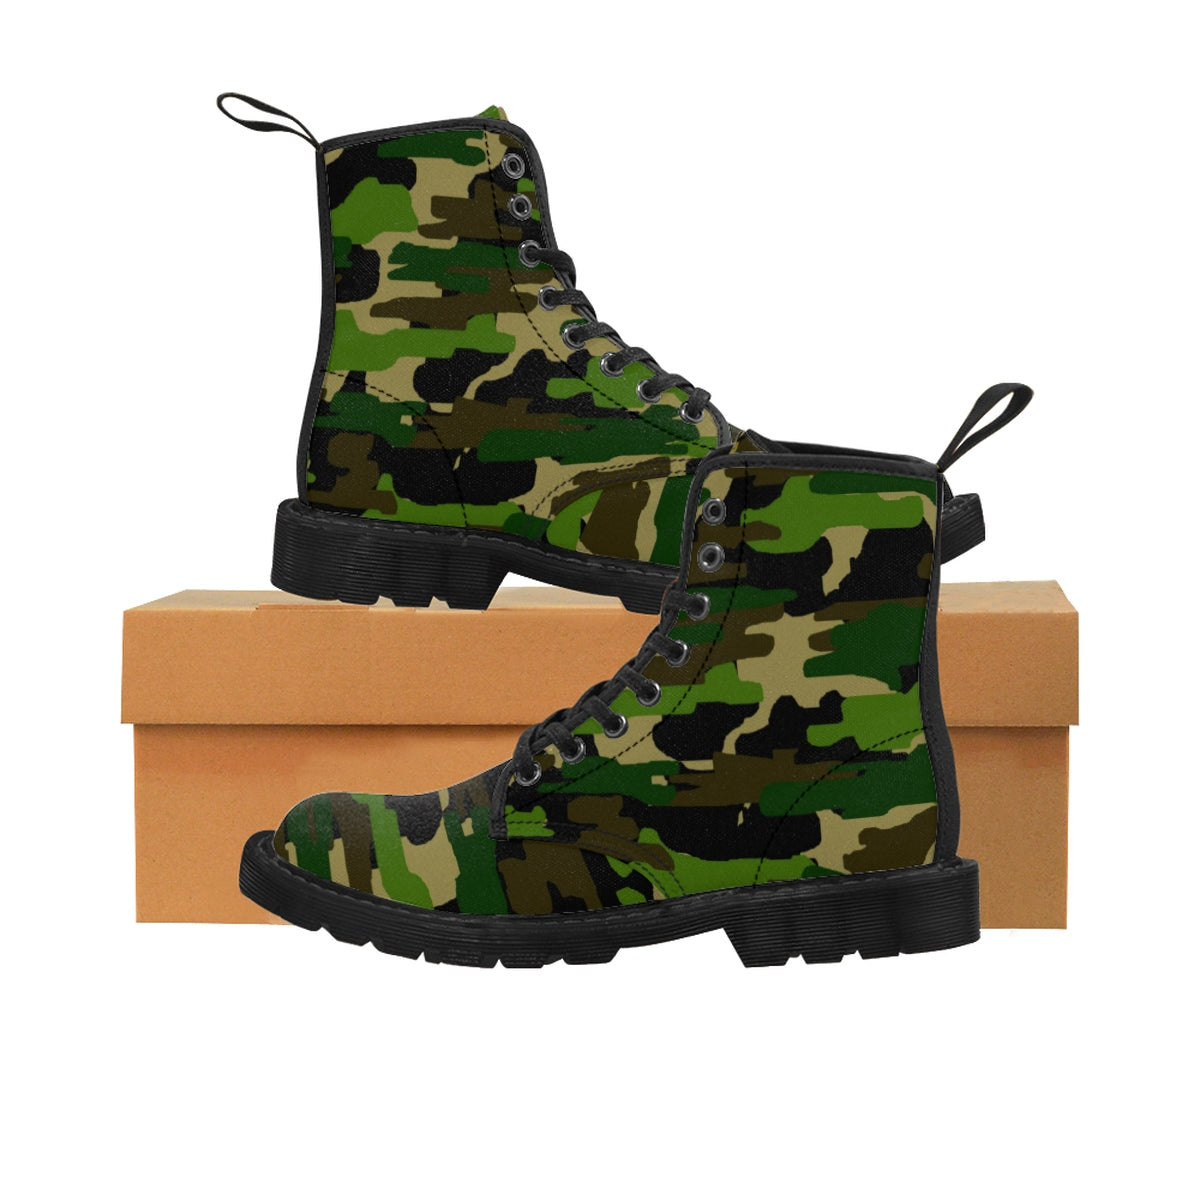 Green Army Military Camouflage Print Men's Lace-Up Winter Boots Cap Toe Shoes (US Size 7-10.5)-Men's Winter Boots-Black-US 9-Heidi Kimura Art LLC Green Camo Men's Boots, Green Army Military Camouflage Print Men's Lace-Up Winter Boots Cap Toe Shoes (US Size 7-10.5)